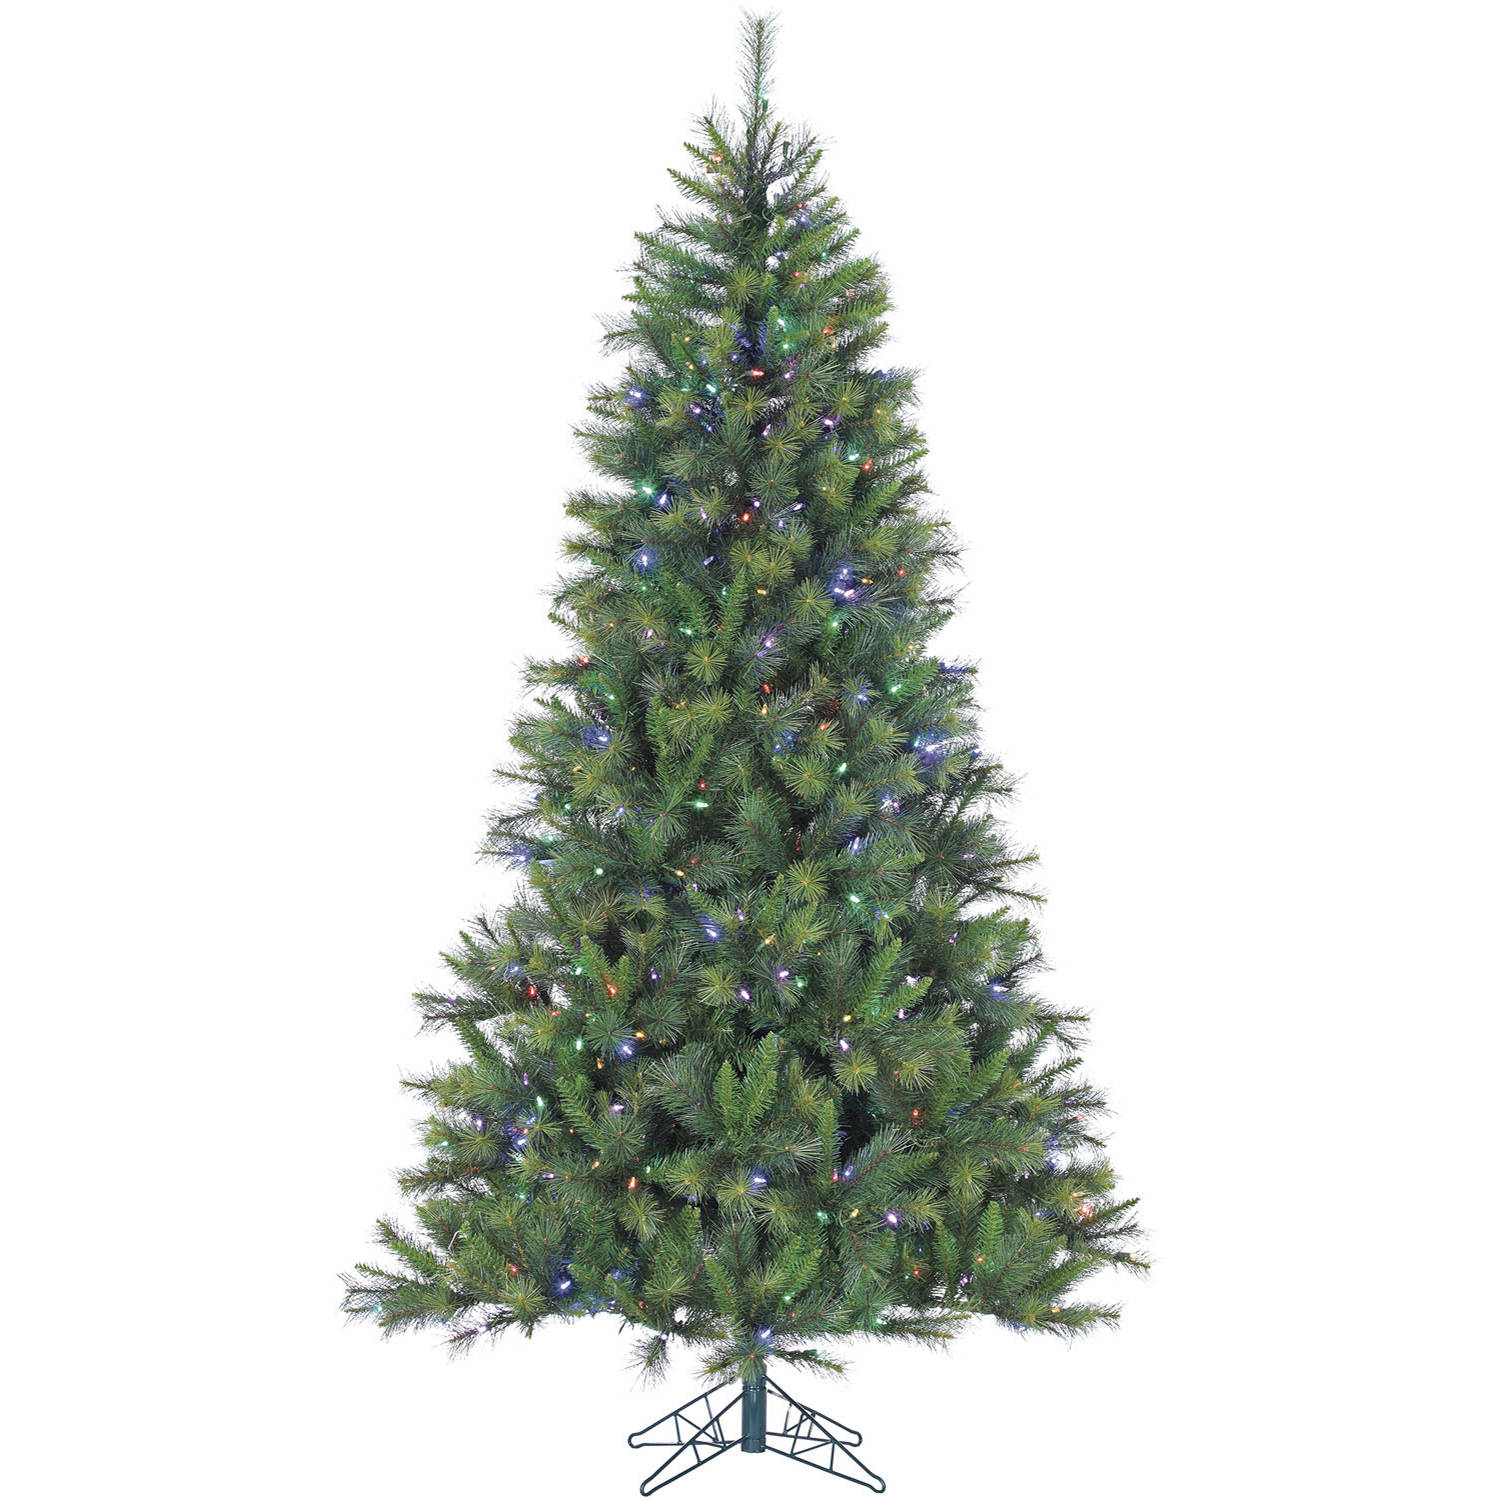 Fraser Hill Farm Pre-Lit 7.5' Canyon Pine Artificial Christmas Tree with Multi-Color LED String Lighting